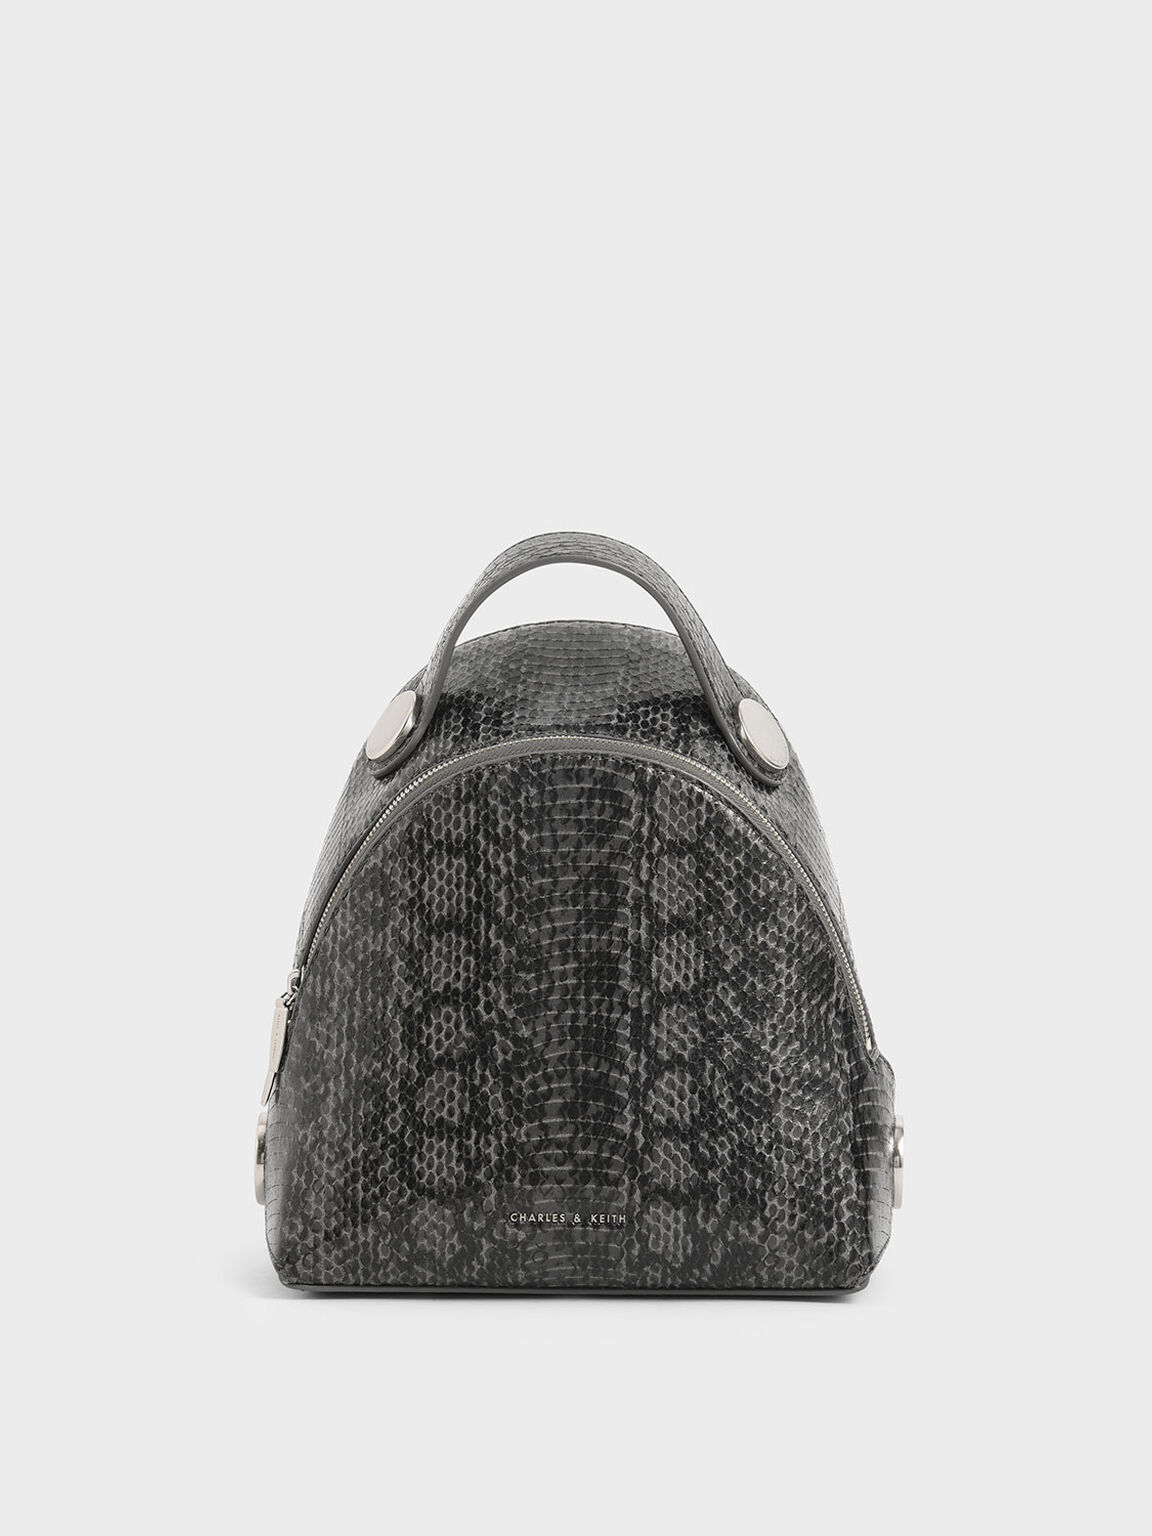 Snake Print Dome Backpack, Grey, hi-res